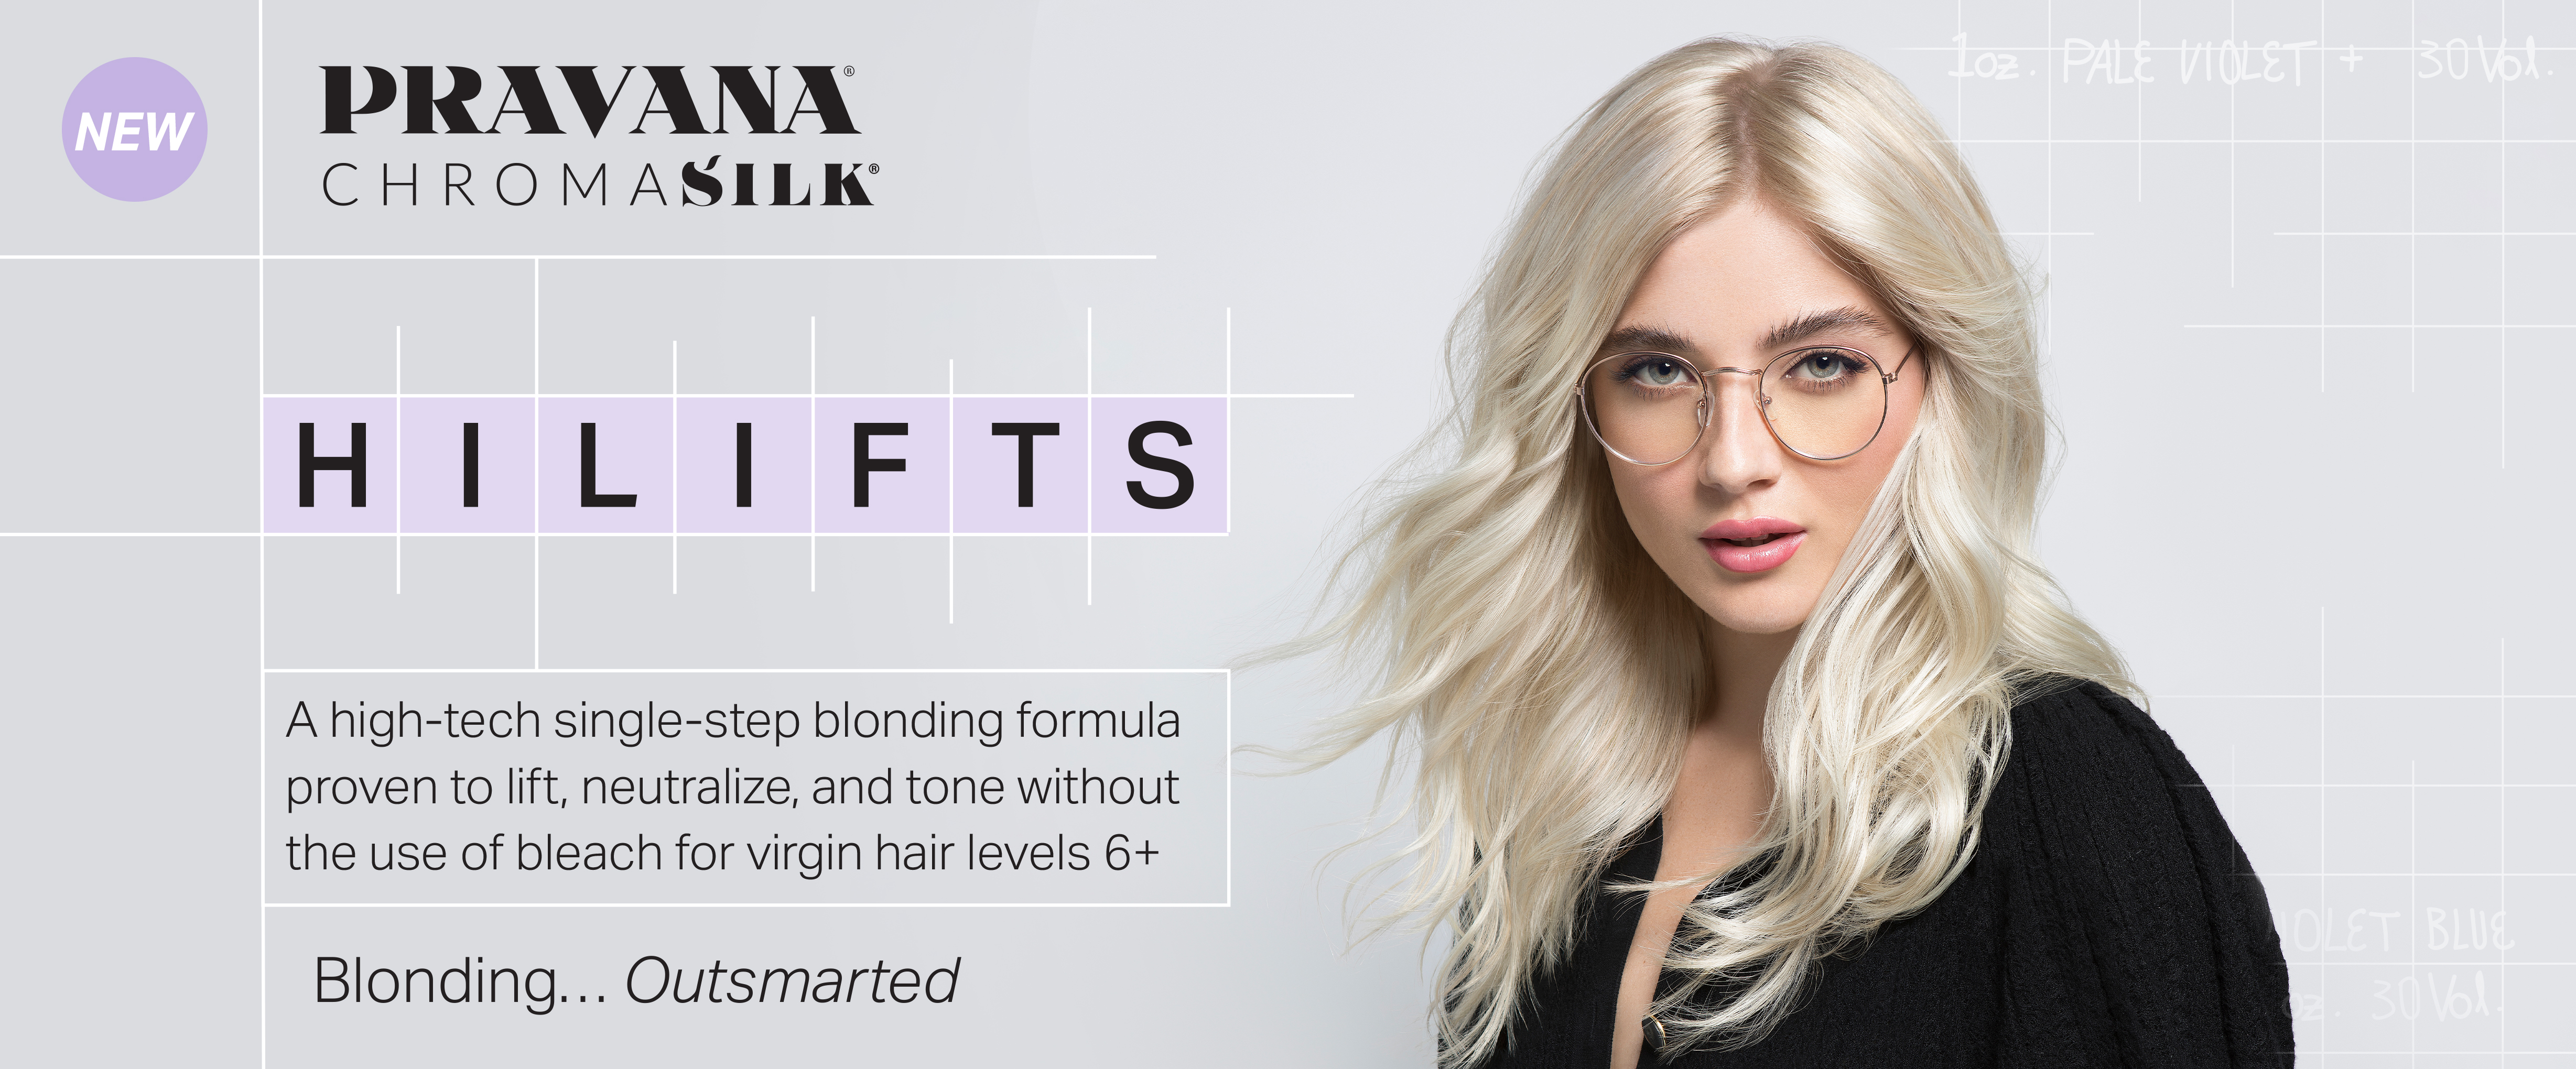 hair model with platinum blonde hair from pravana hi lifts. ChromaSilk Hi Lifts: a high-tech single-step blonding formula proven to lift, neutralize, and tone without the use of bleach for virgin hair levels 6 plus. Blonding, outsmarted.